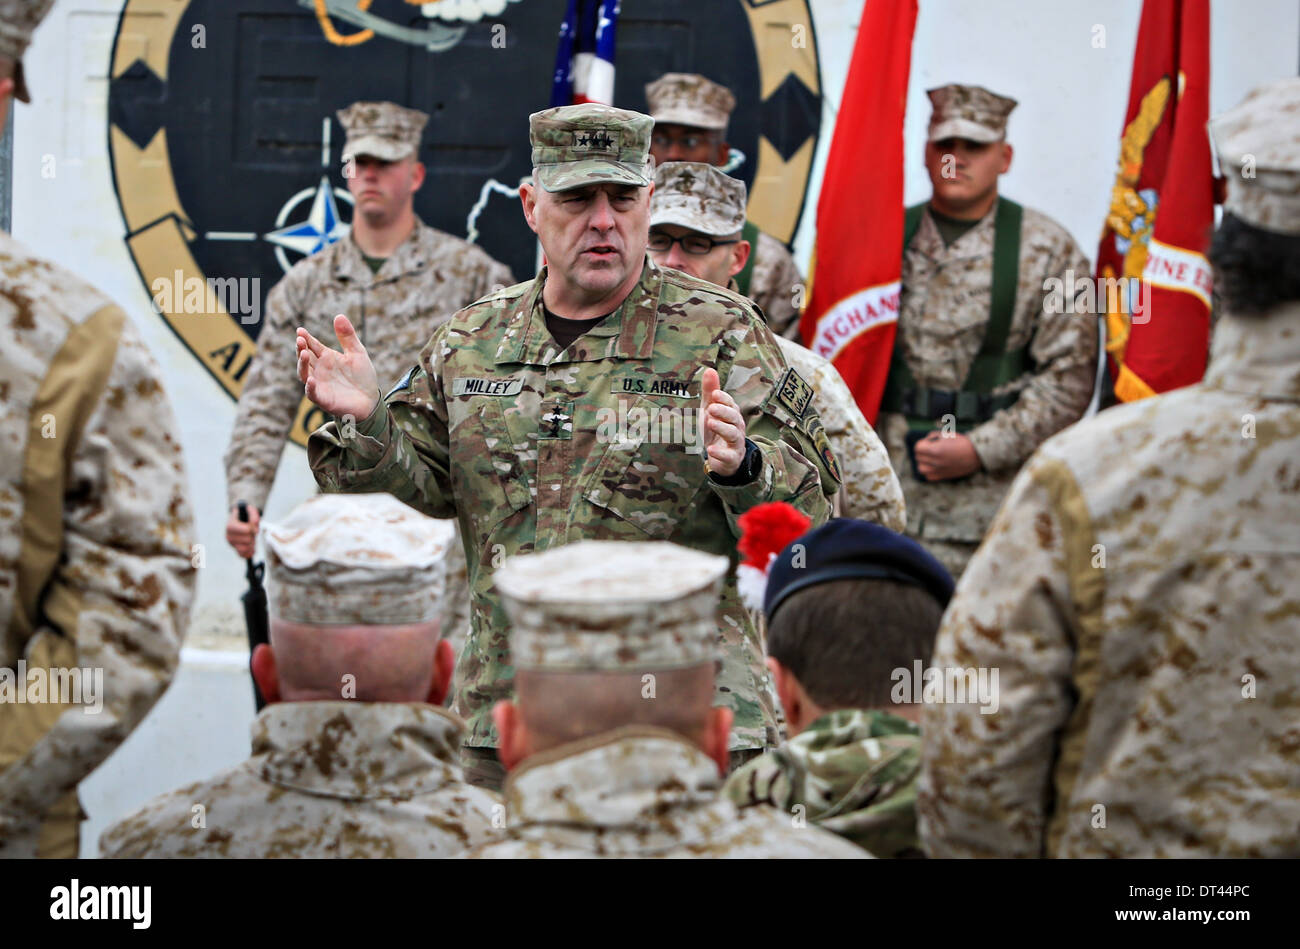 US Army Lieutenant Gen. Mark A. Milley, commanding general, International Security Assistance Force Joint Command, speaks during a transfer of authority ceremony at Camp Leatherneck February 5, 2014 in Washer, Helmand Provence, Afghanistan. - Stock Image